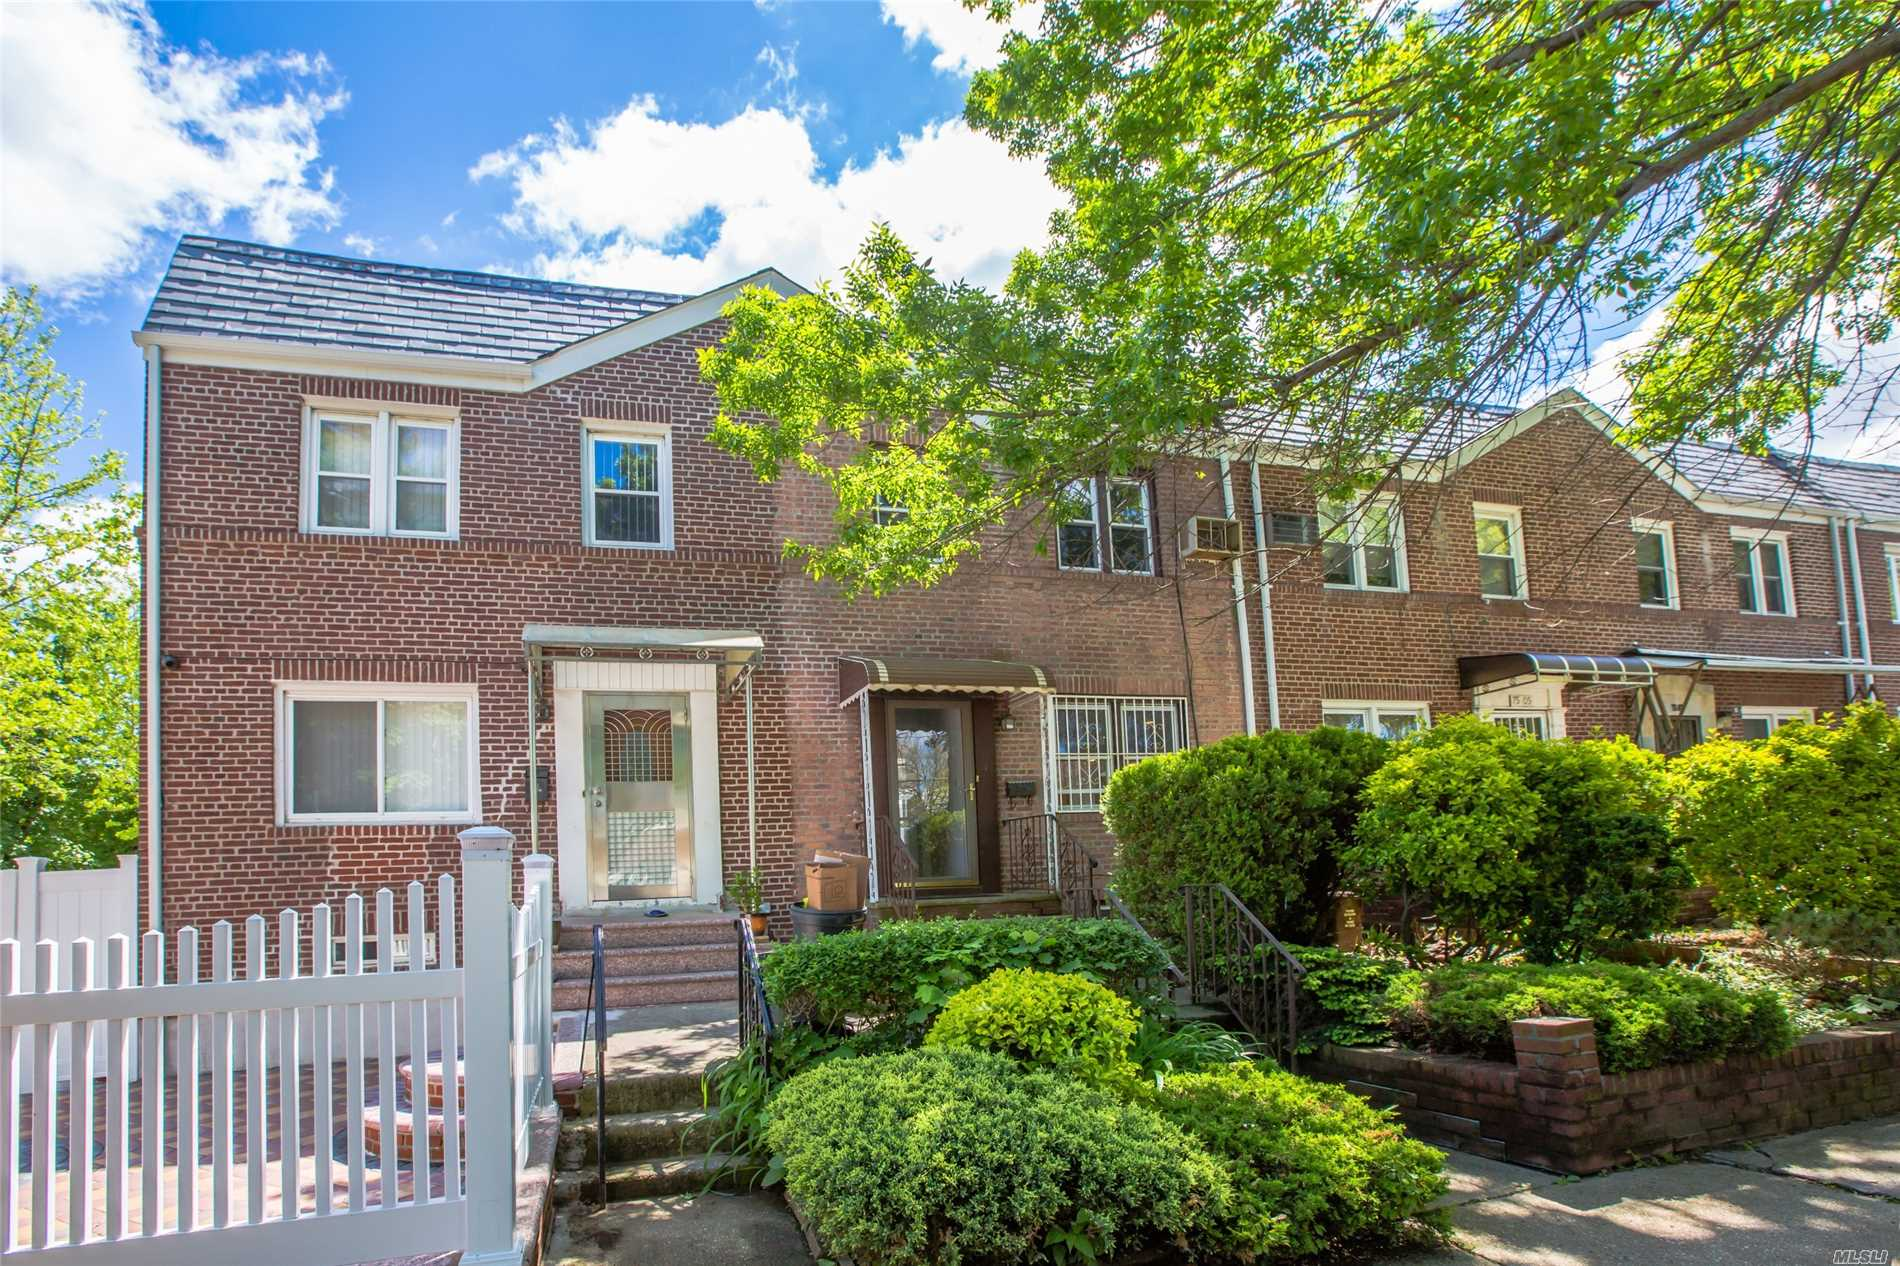 Beautiful Block, Well Maintained Brick Townhouse With Detached 1 Car Garage. Clean & Sunny Bright Home. Full Finished Walk In Basement.